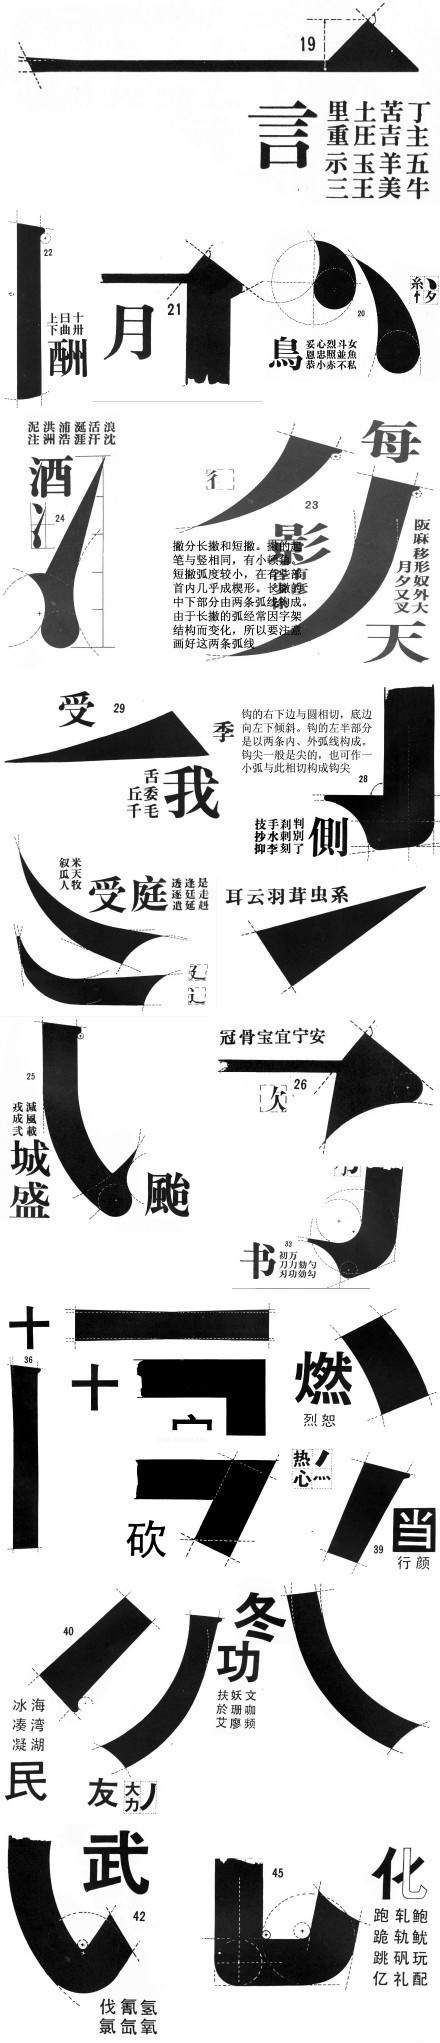 Poster design rules - Basic Rules For Writing Chinese Characters Typographic Postertypographic Designjapanese